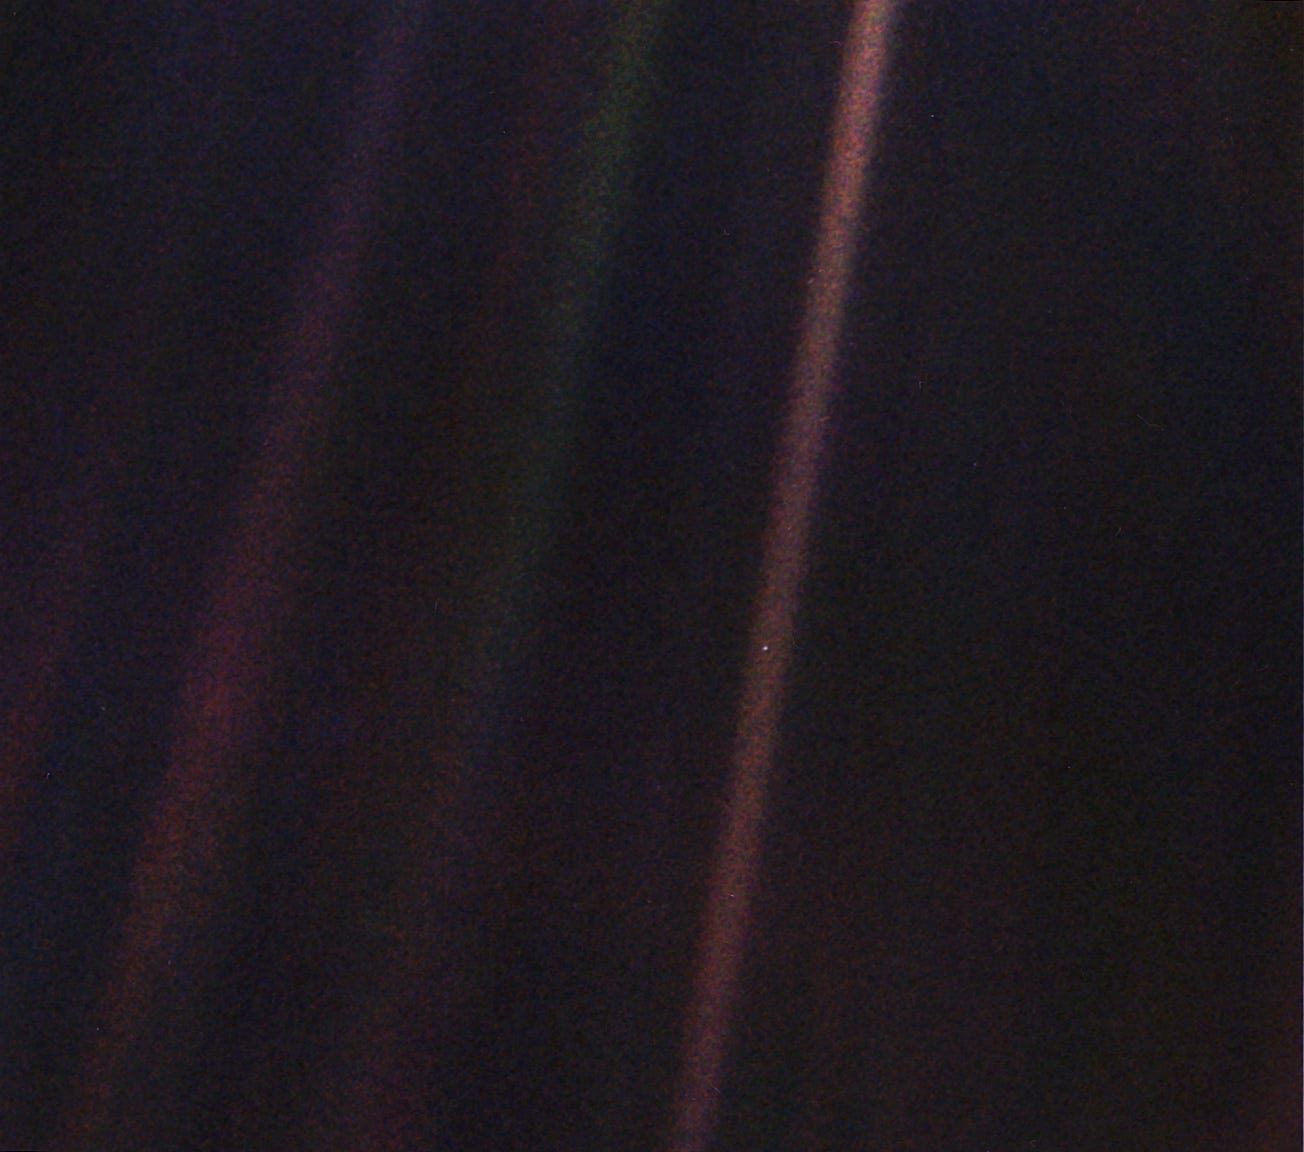 Earth as a small blue dot in a fuzzy beam of light.